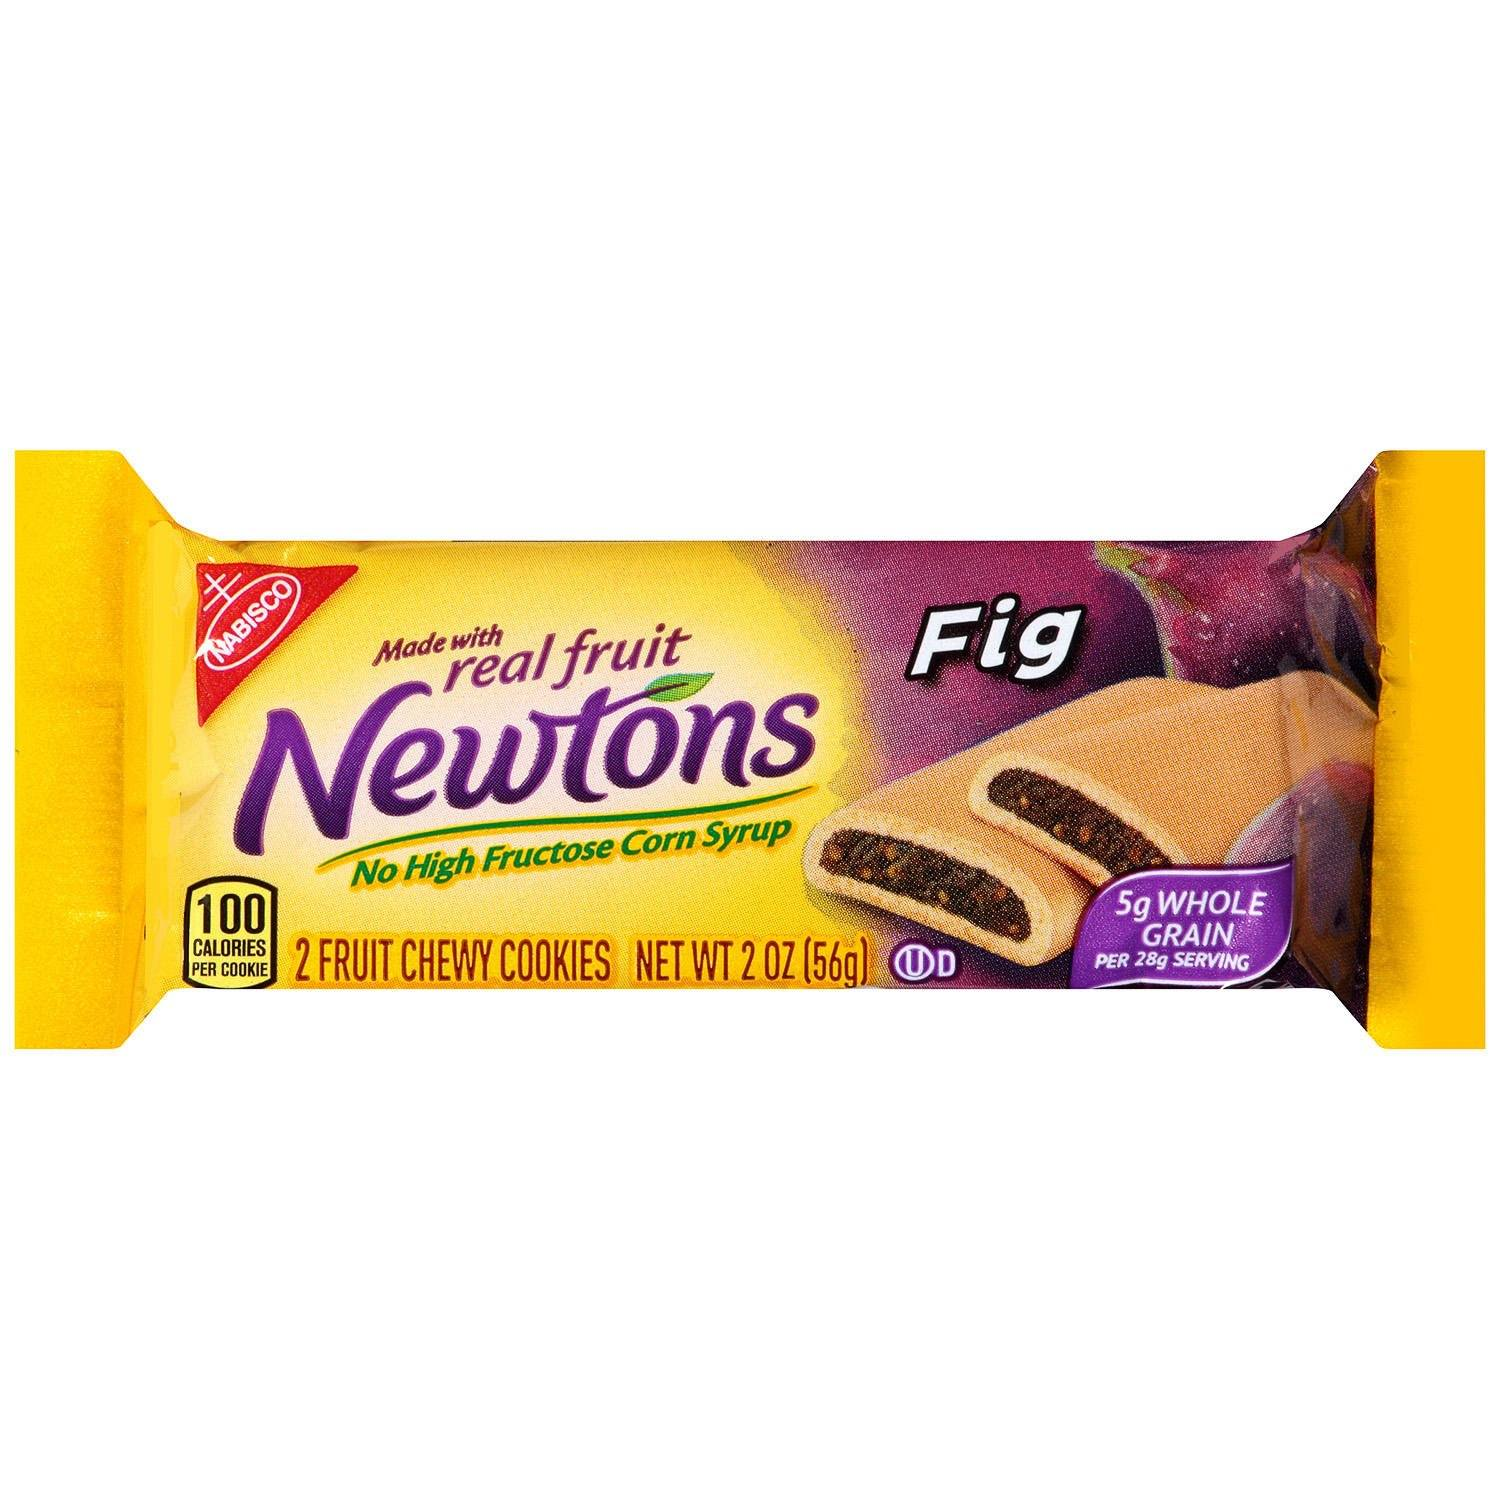 Newtons Soft and Chewy Cookies Newtons Fig 2 Ounce